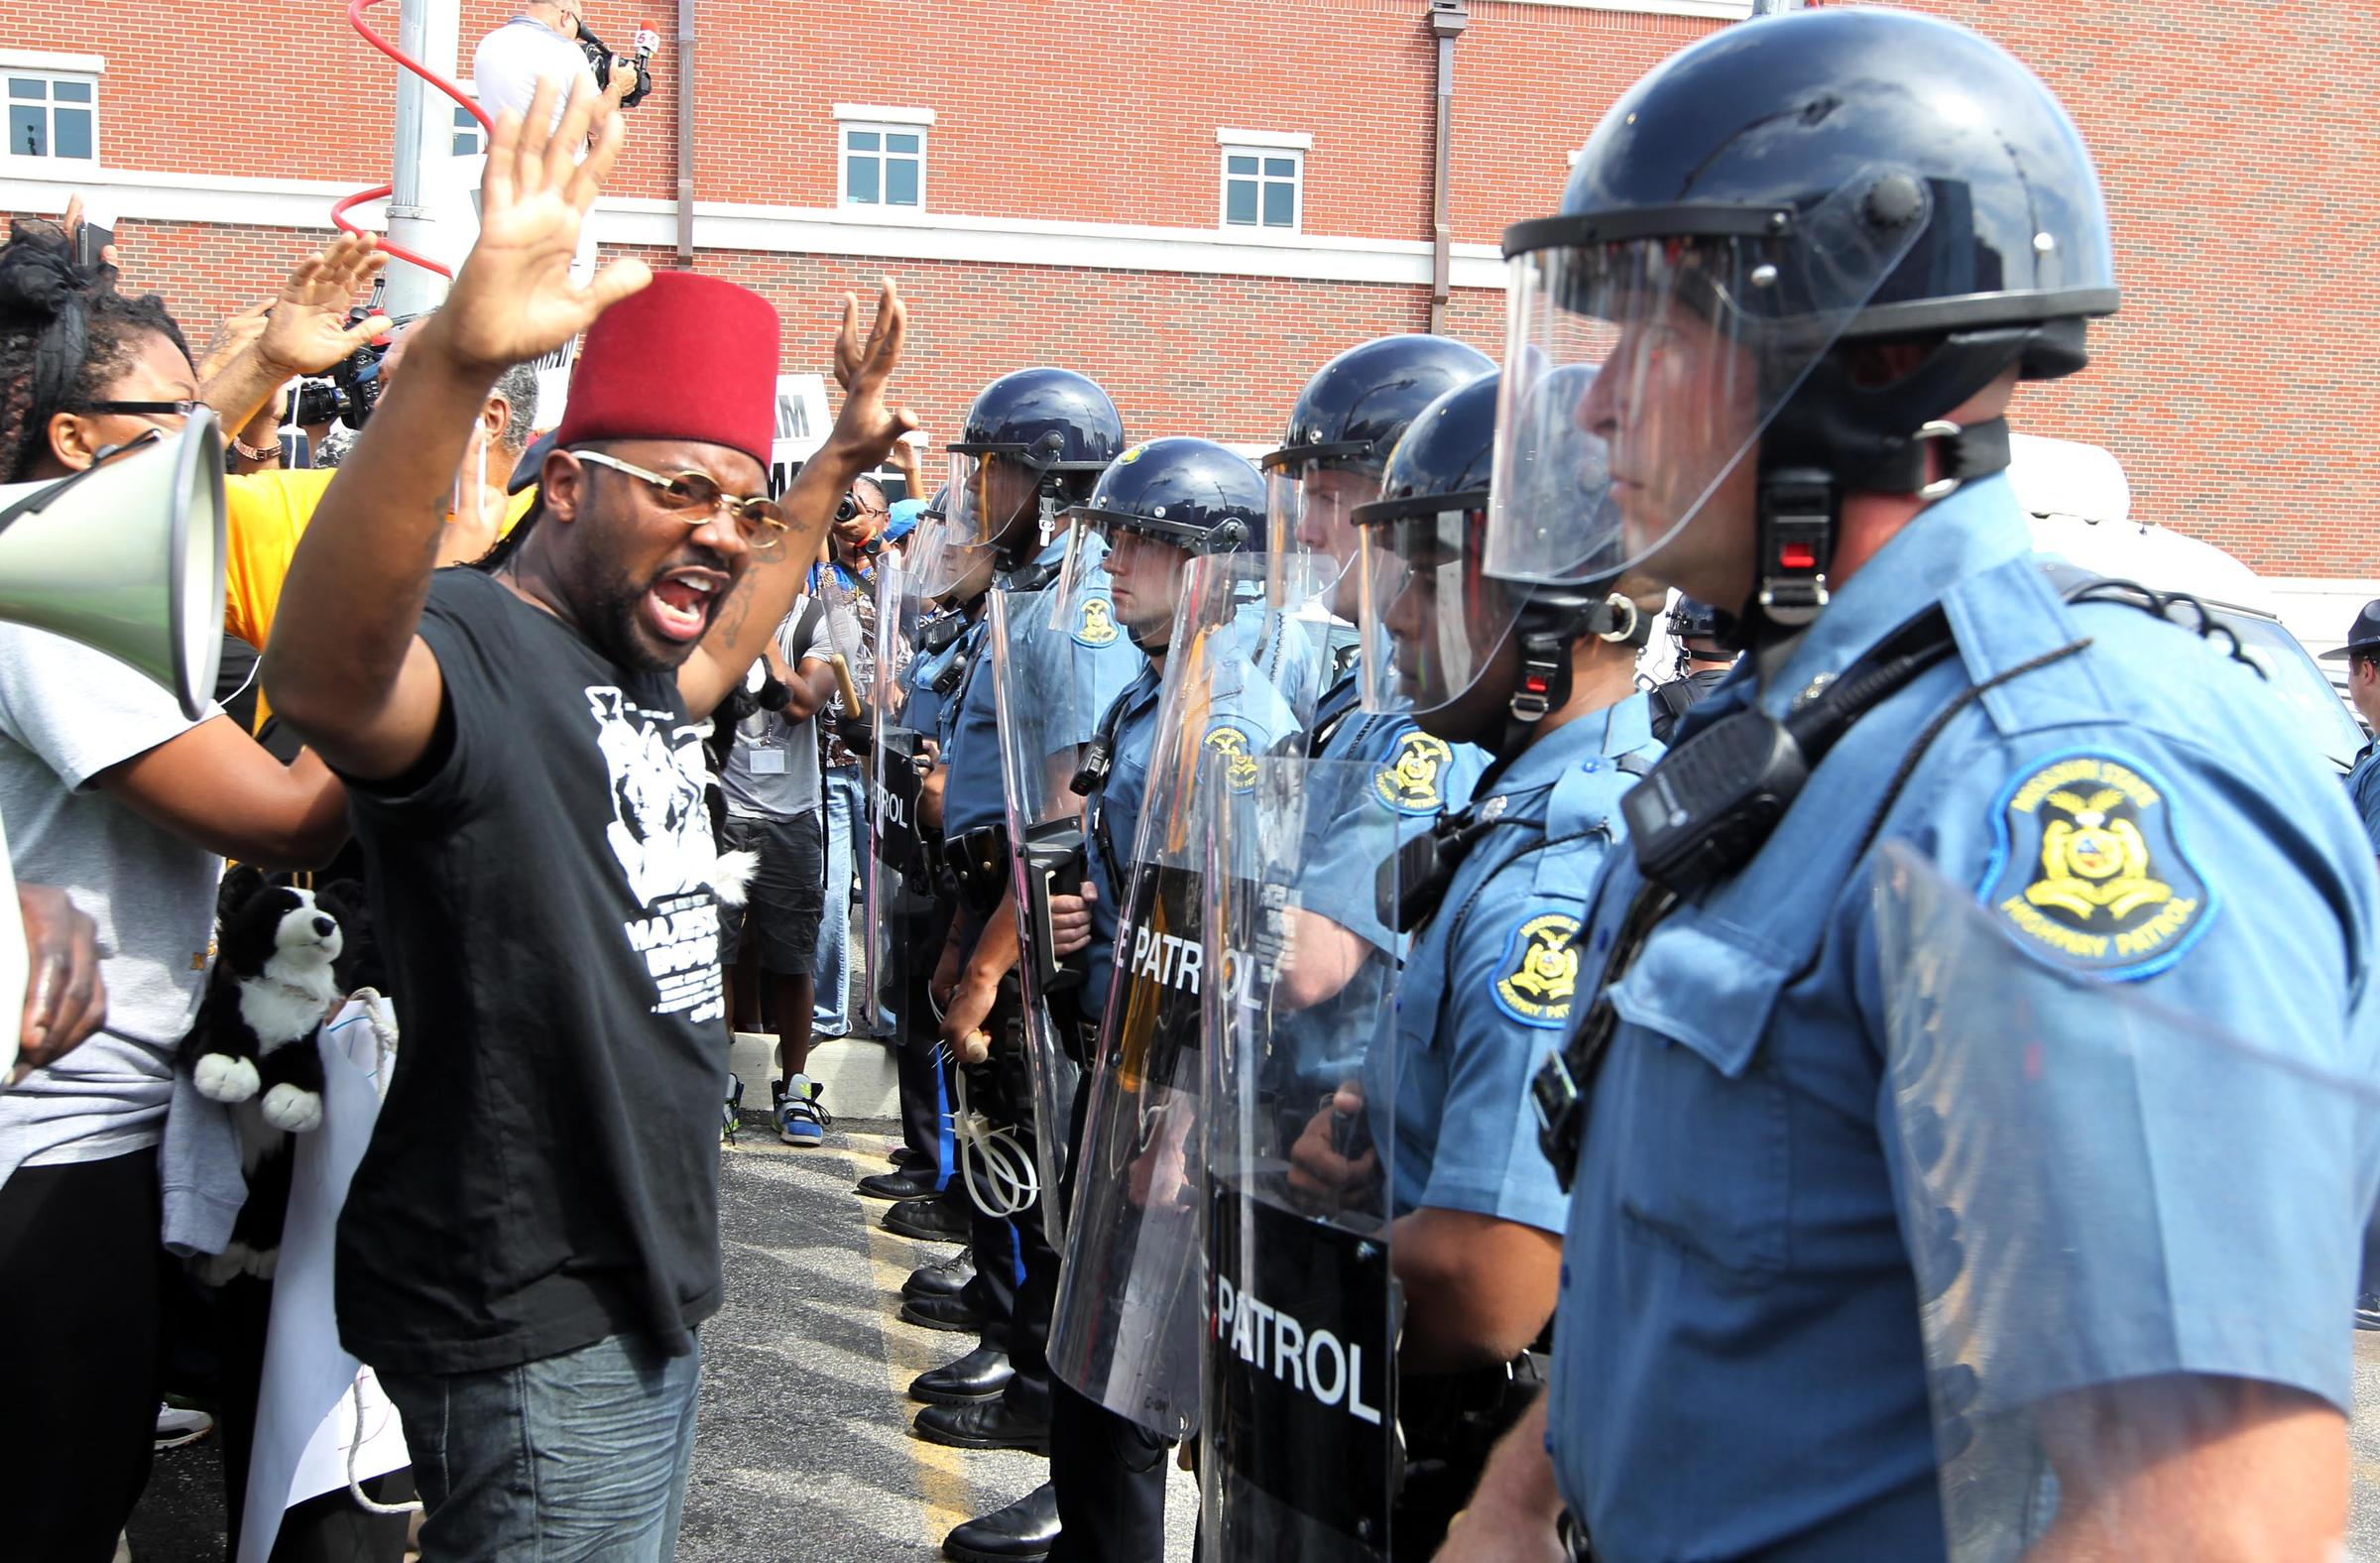 What Will It Take To End The Violence In Ferguson? | St